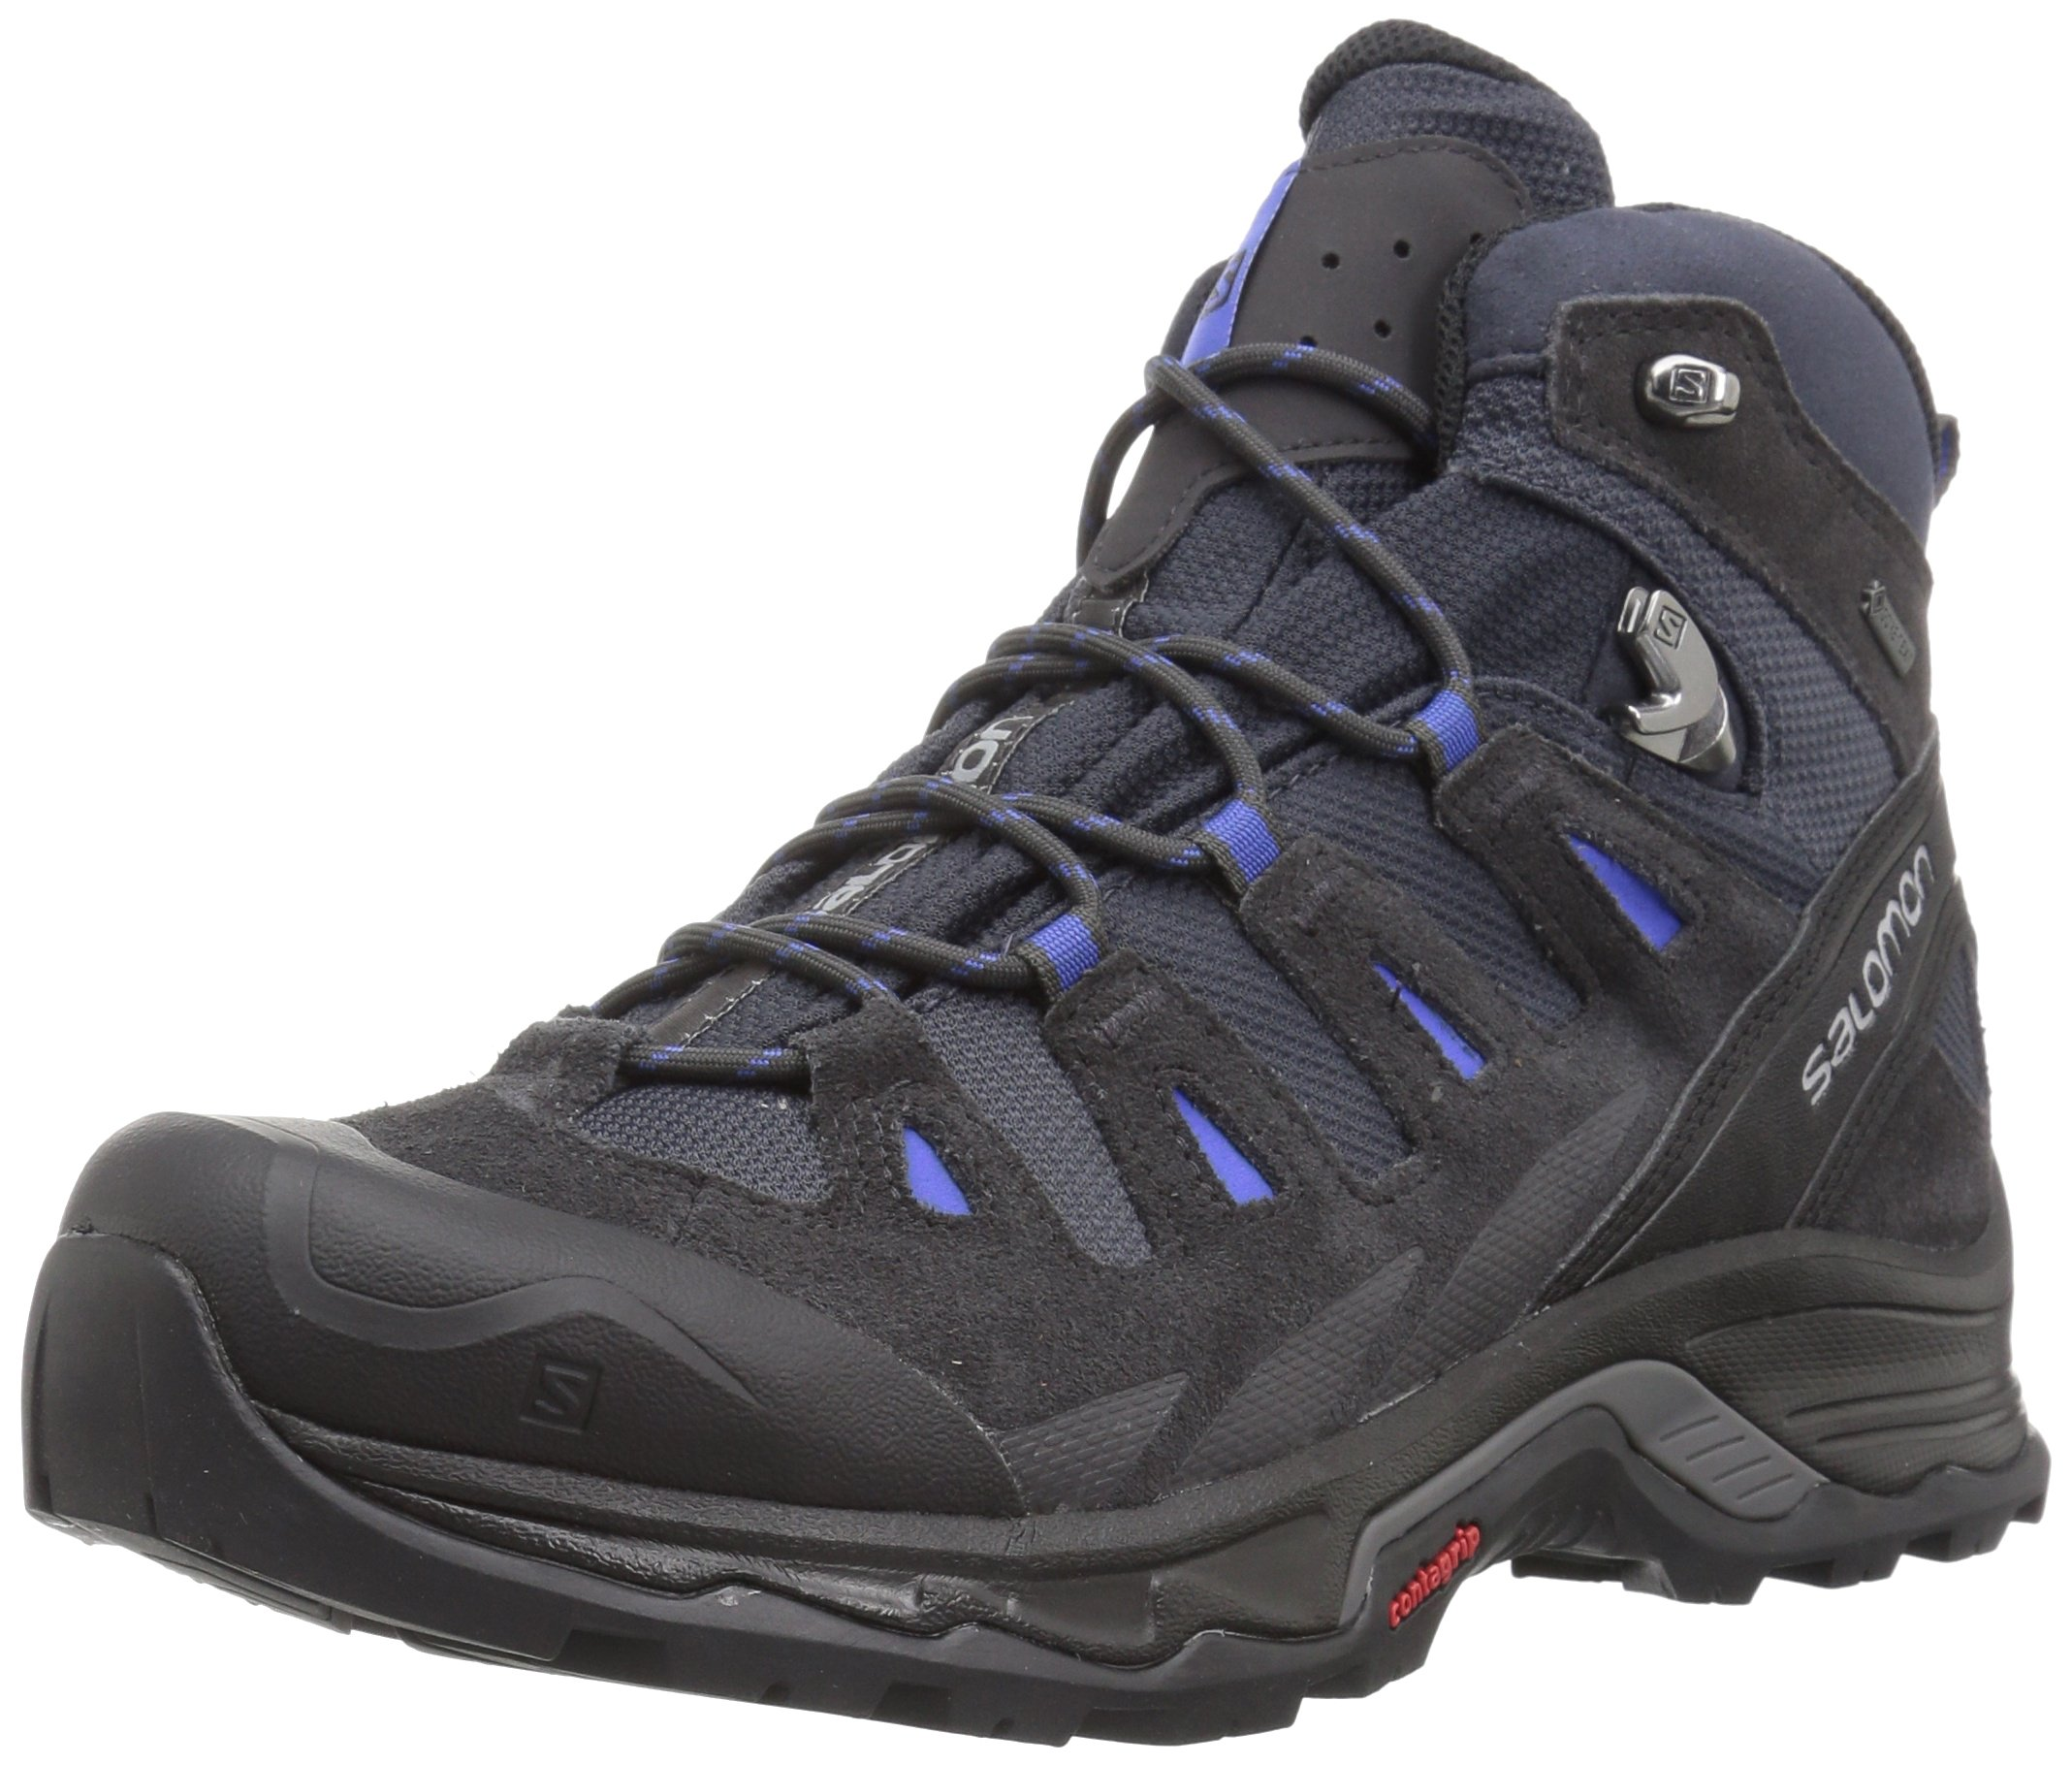 Salomon Women's Quest Prime Gtx W Backpacking Boot, India Ink/Phantom/Amparo Blue, 8 M US